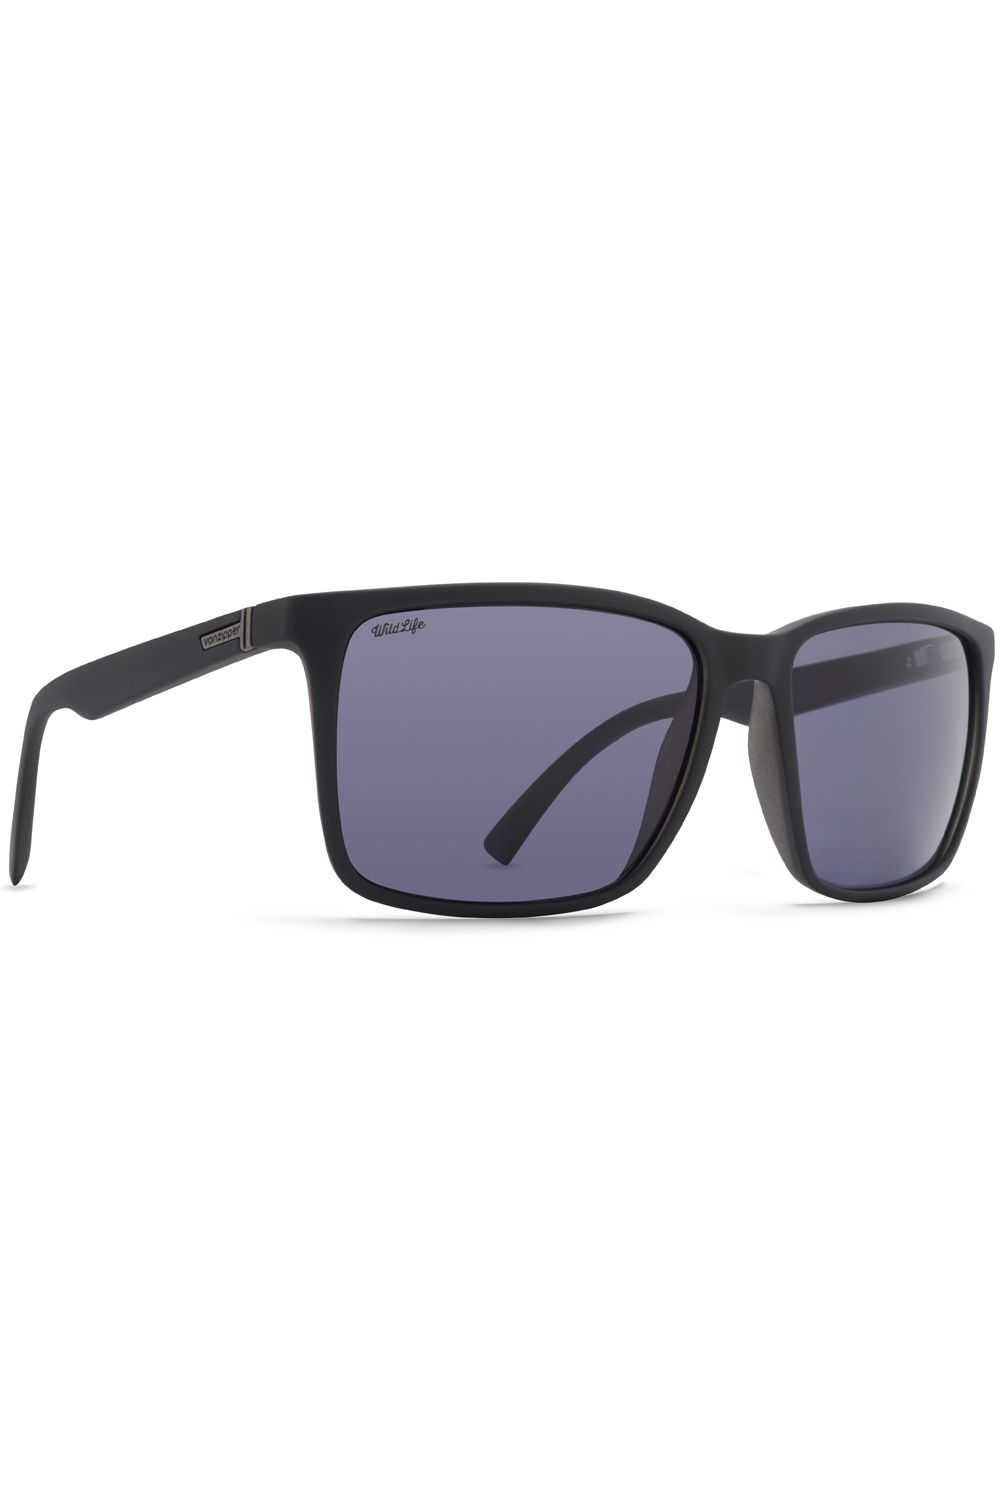 Oculos VonZipper LESMORE WILDLIFE Black Satin / Wildlife Vintage Grey Polar